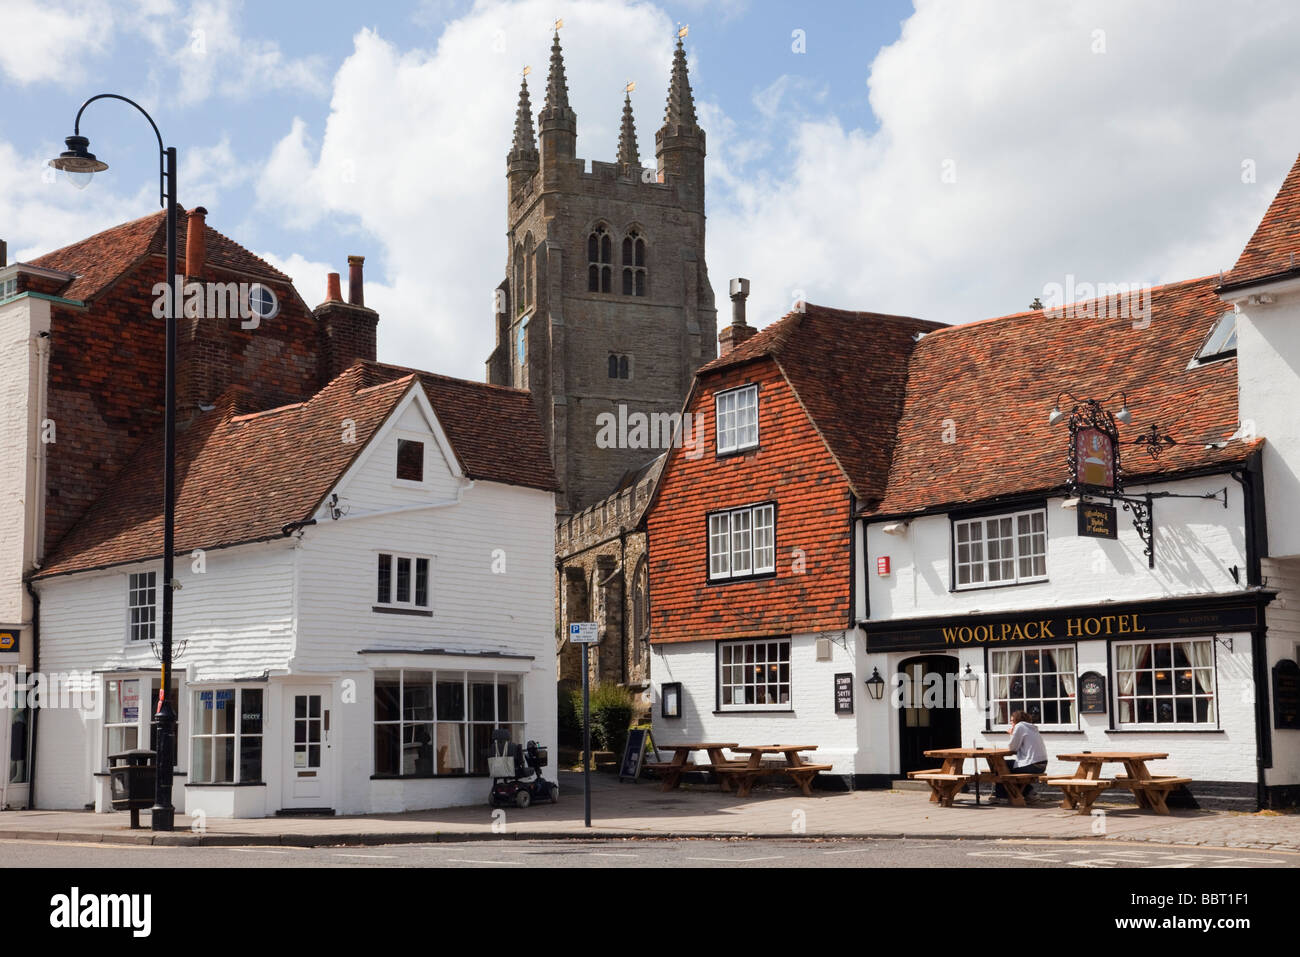 The Woolpack hotel 15th century pub and St Mildred's Parish Church clock tower in Wealden village of Tenterden - Stock Image